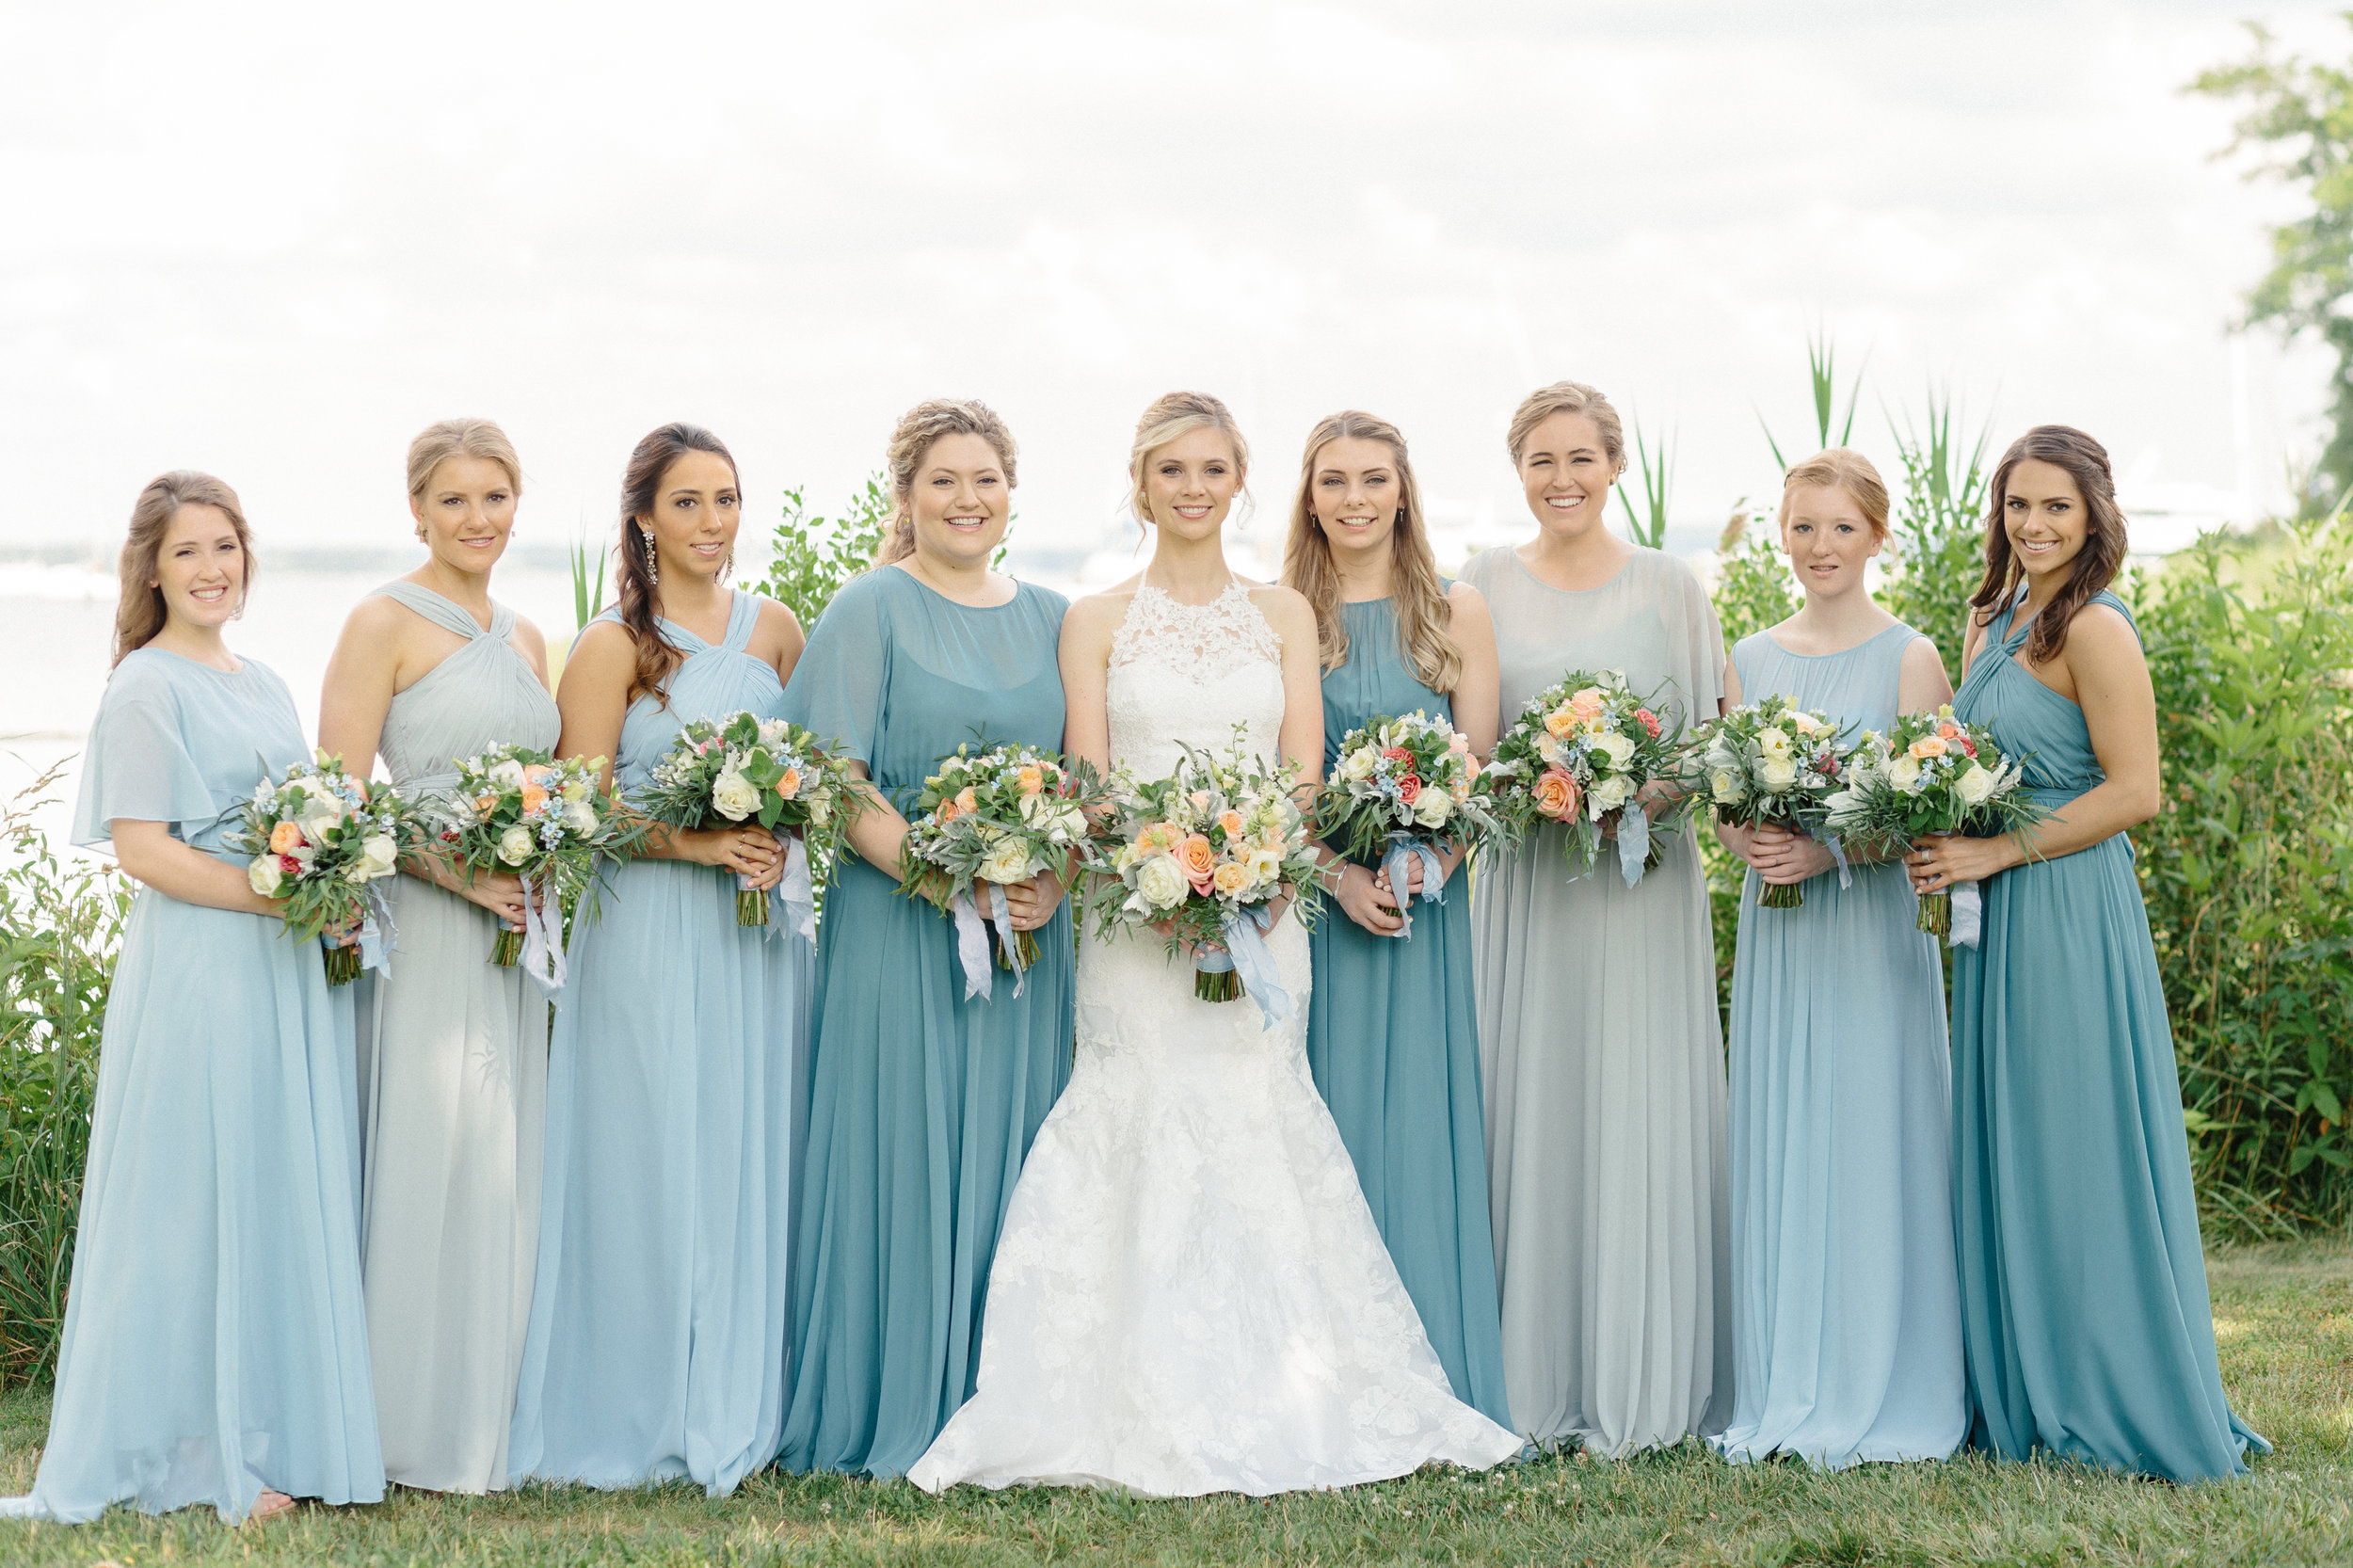 shades-of-blue-mismatched-bridesmaid-dresses